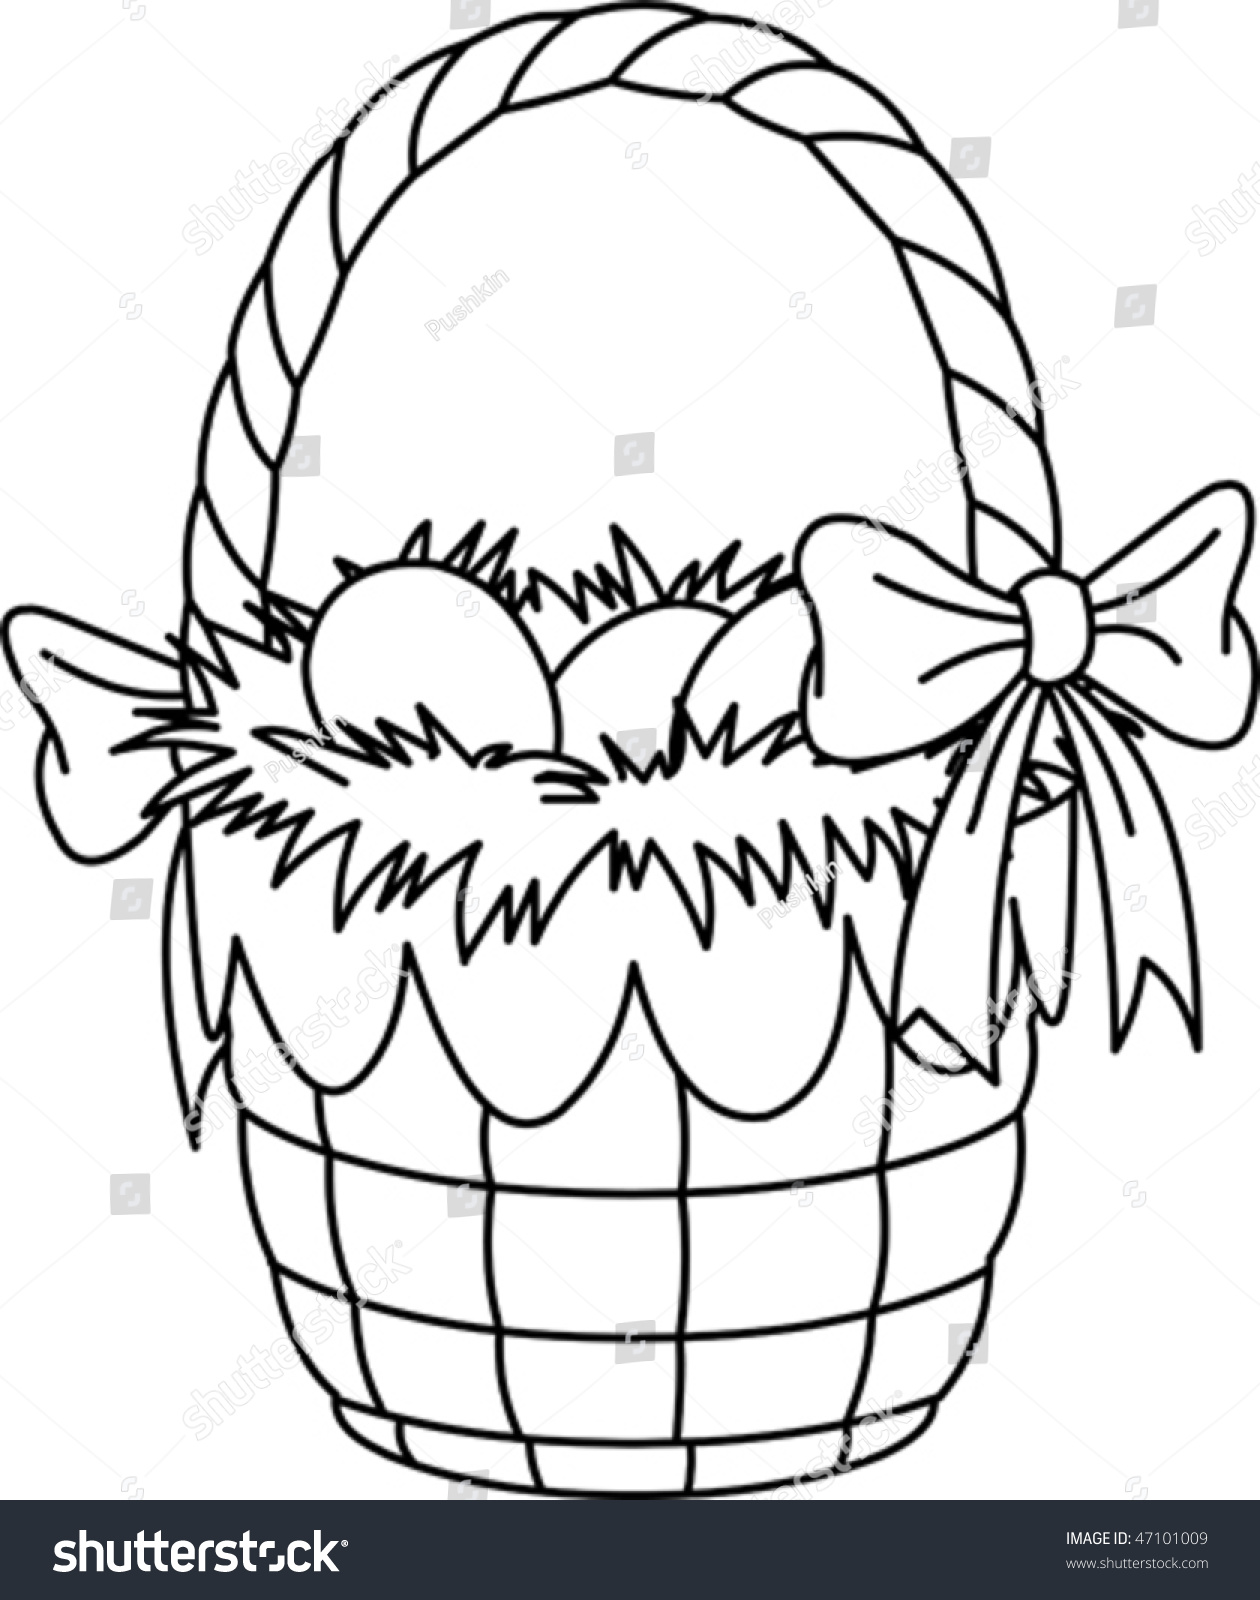 pretty easter basket coloring page - Easter Basket Coloring Pages